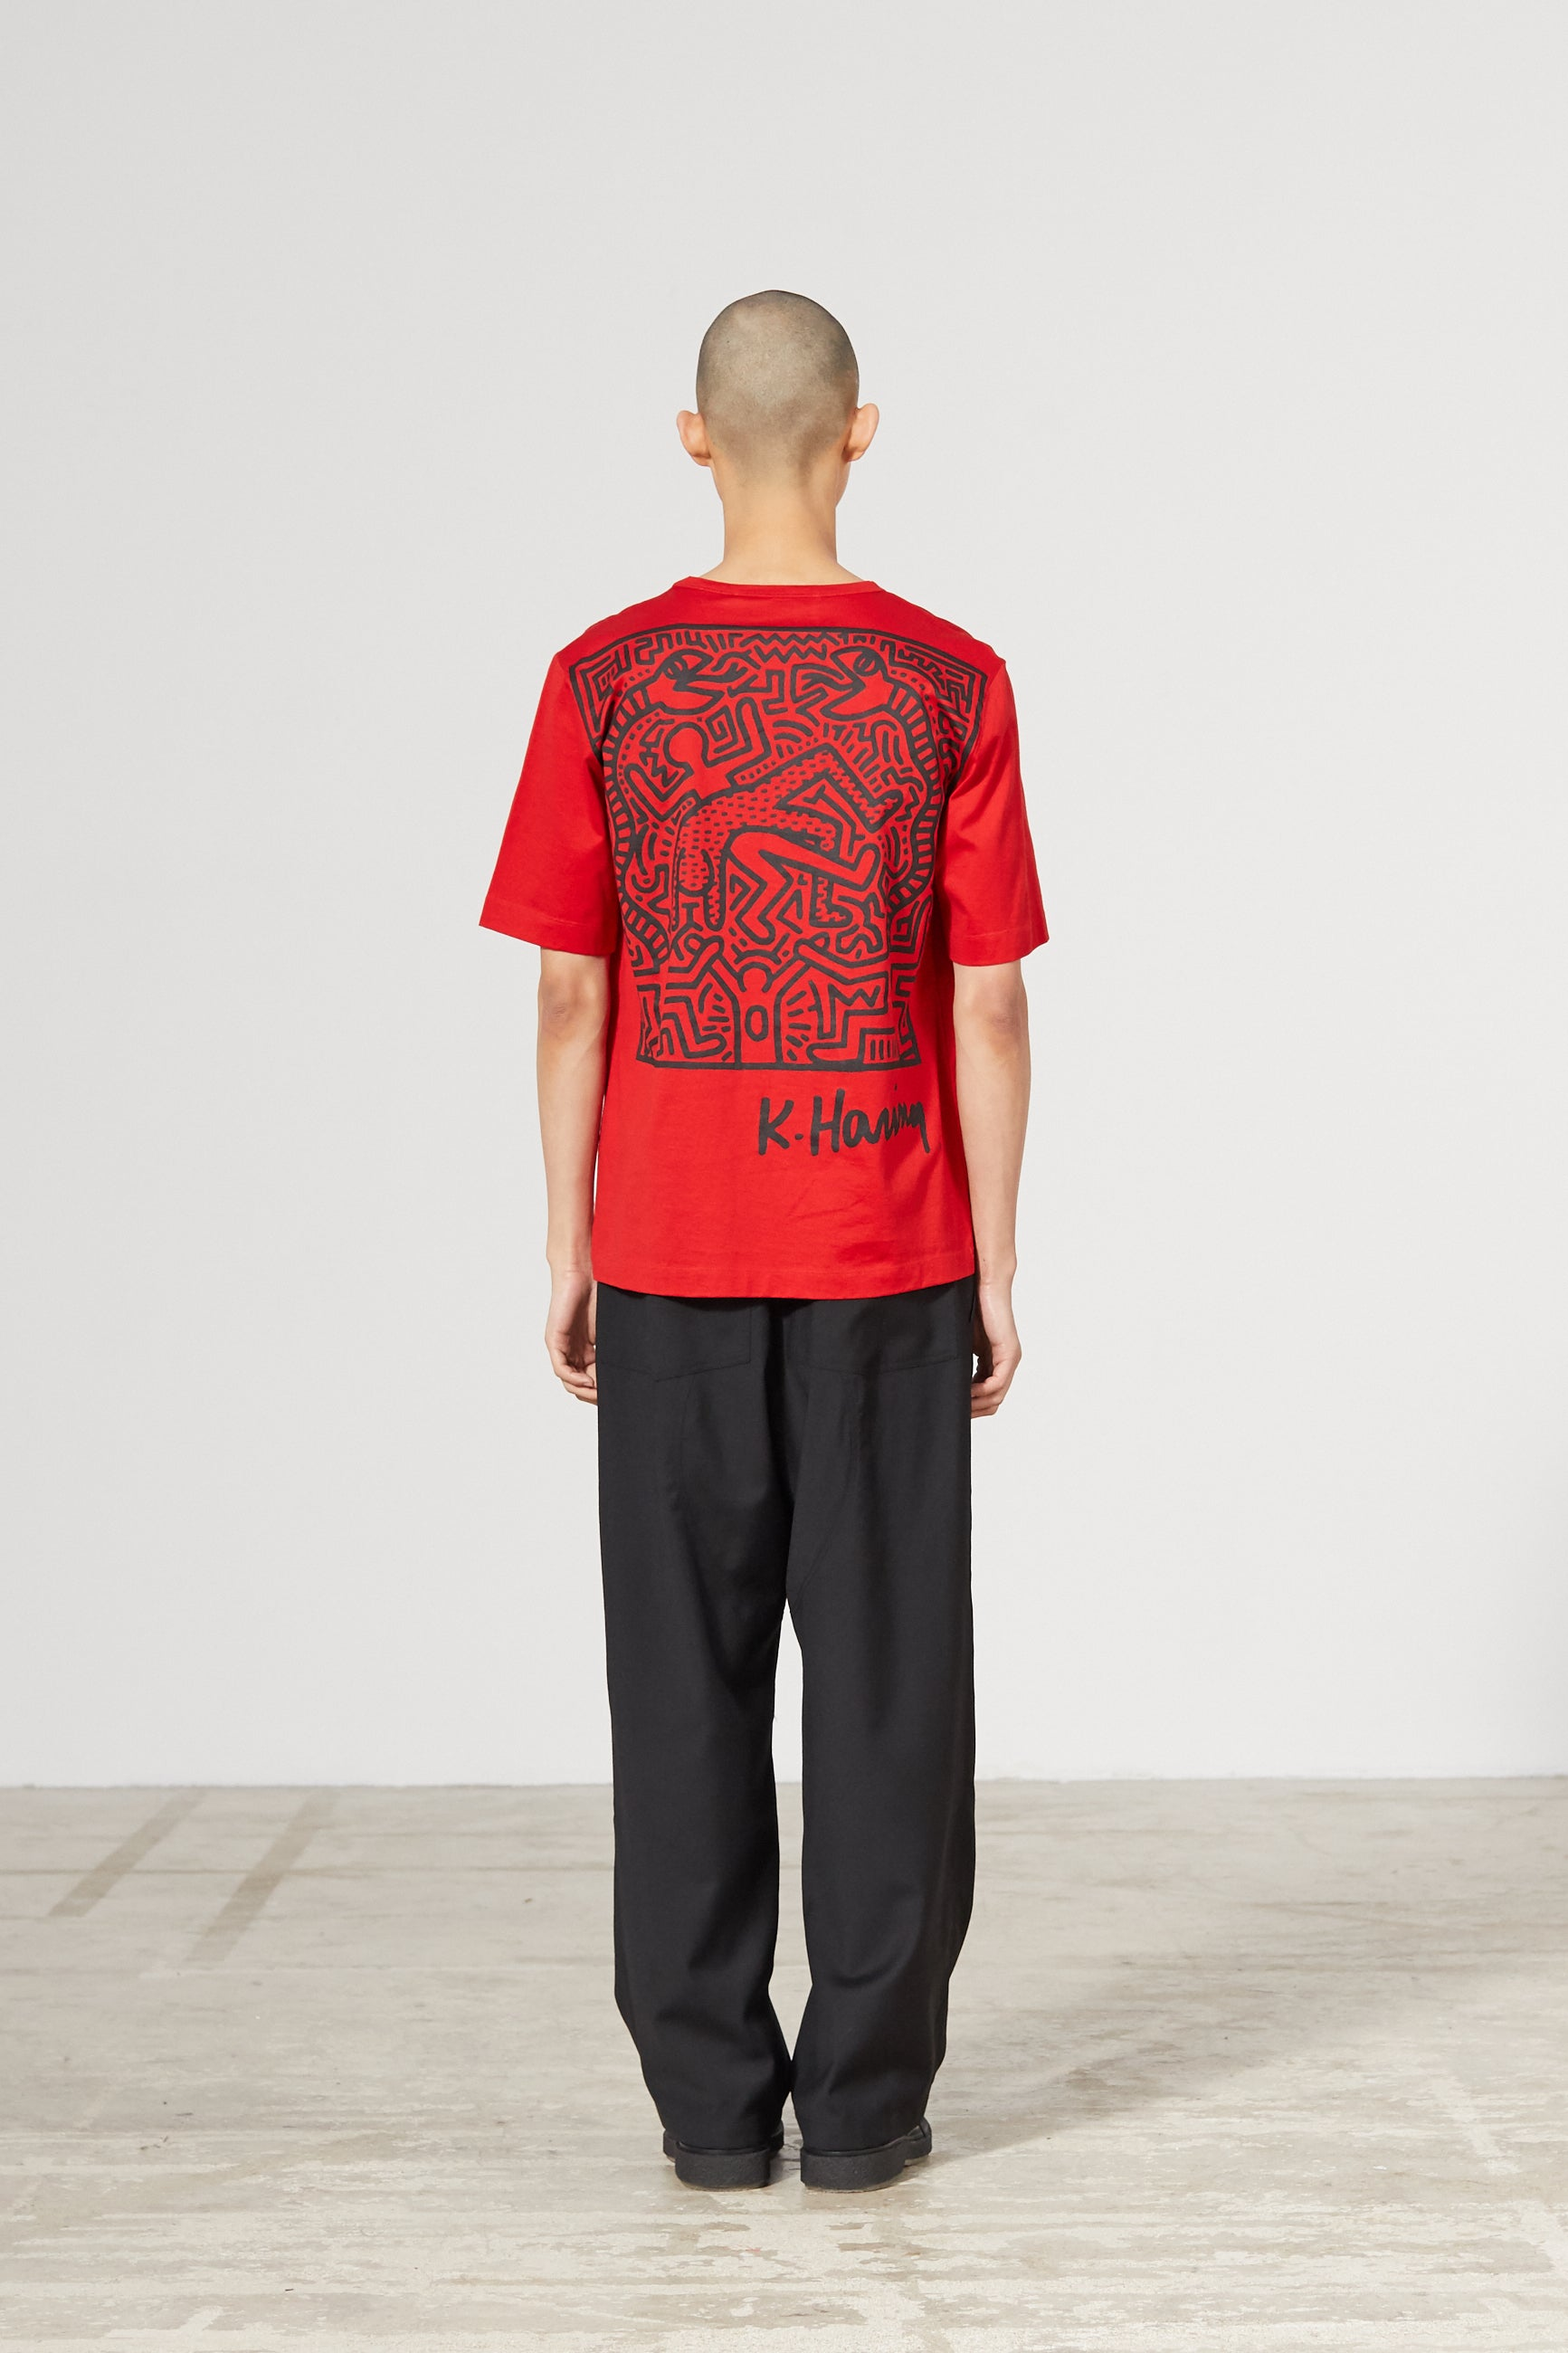 UNITY PATCH KEITH HARING RED T-SHIRT